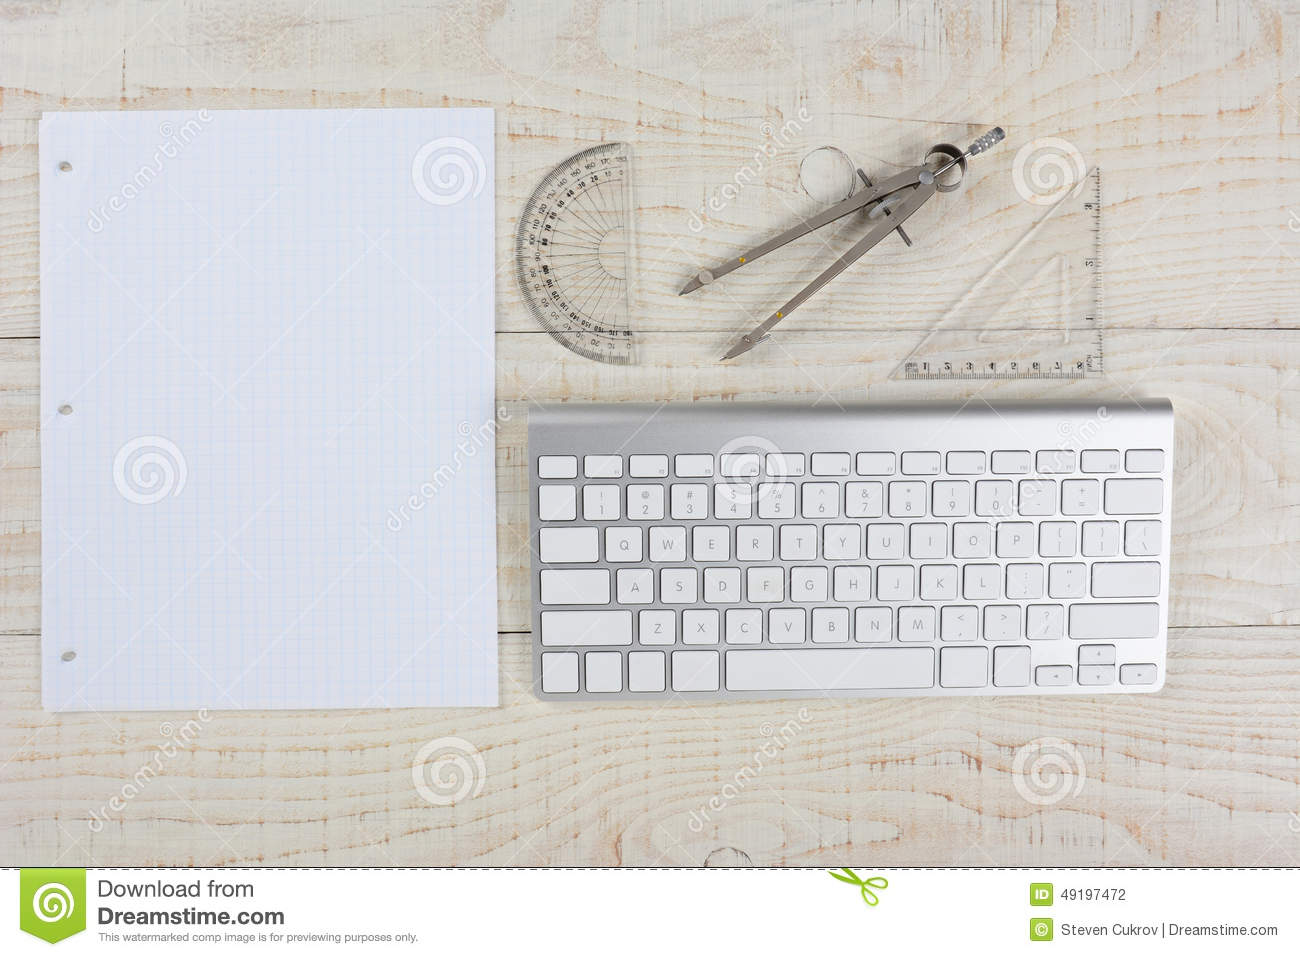 Bureau et papier de graphique blancs photo stock image du blanc